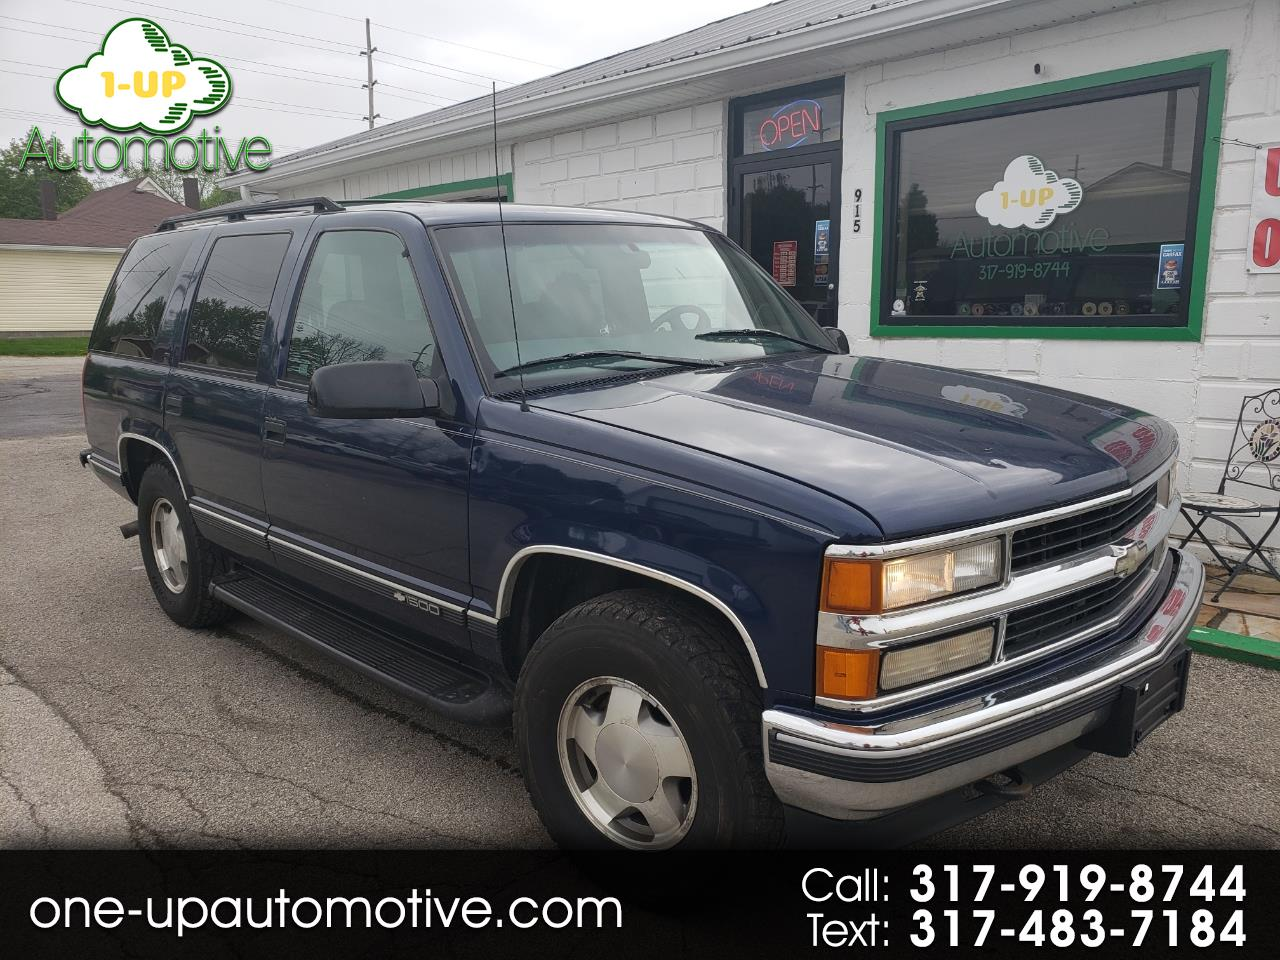 1997 Chevrolet Tahoe LT 4dr 4WD SUV